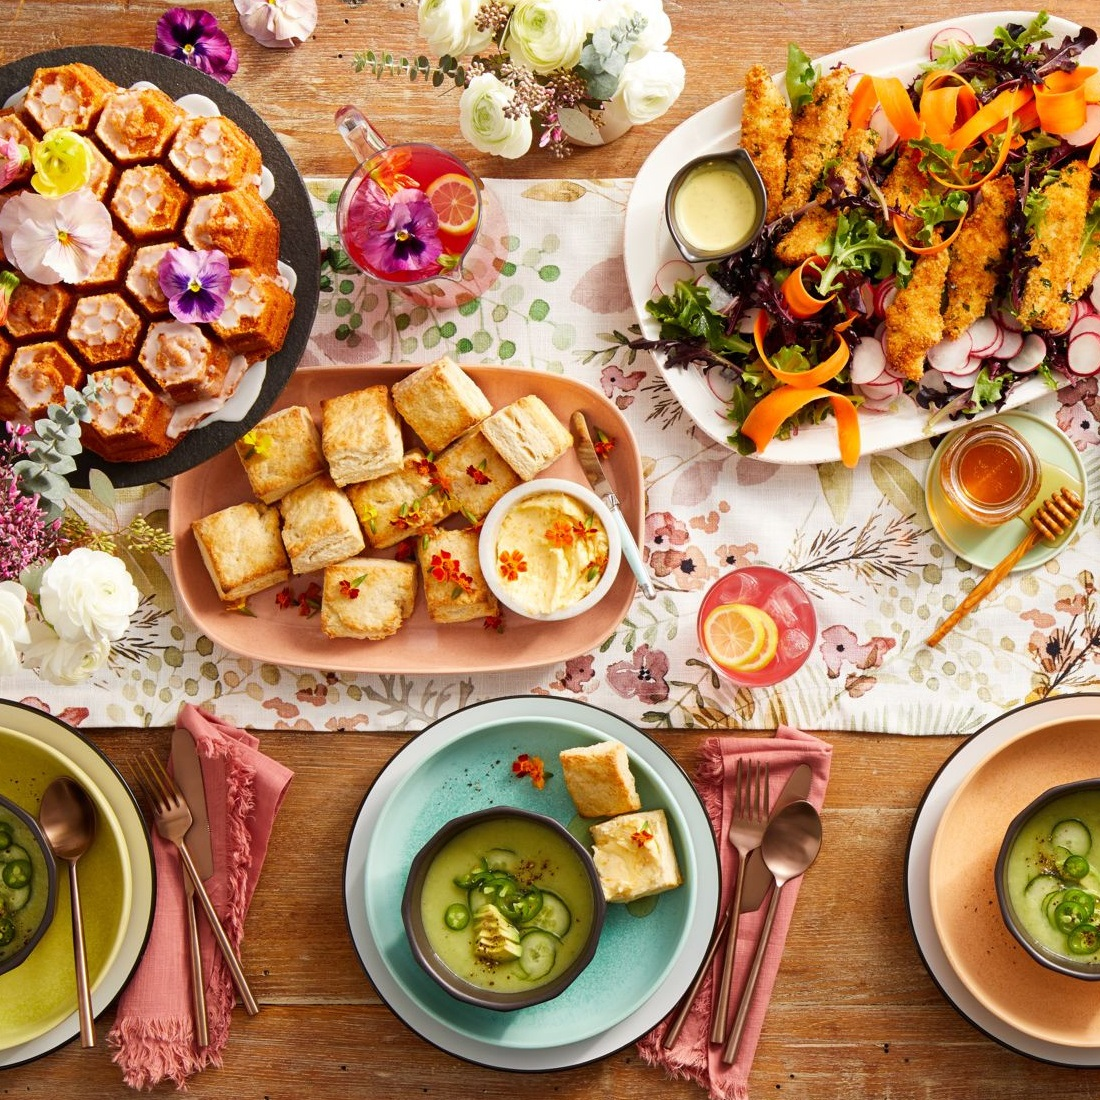 overhead shot of brunch table set with cake, biscuits, green gazpacho, lemonade, and flowers